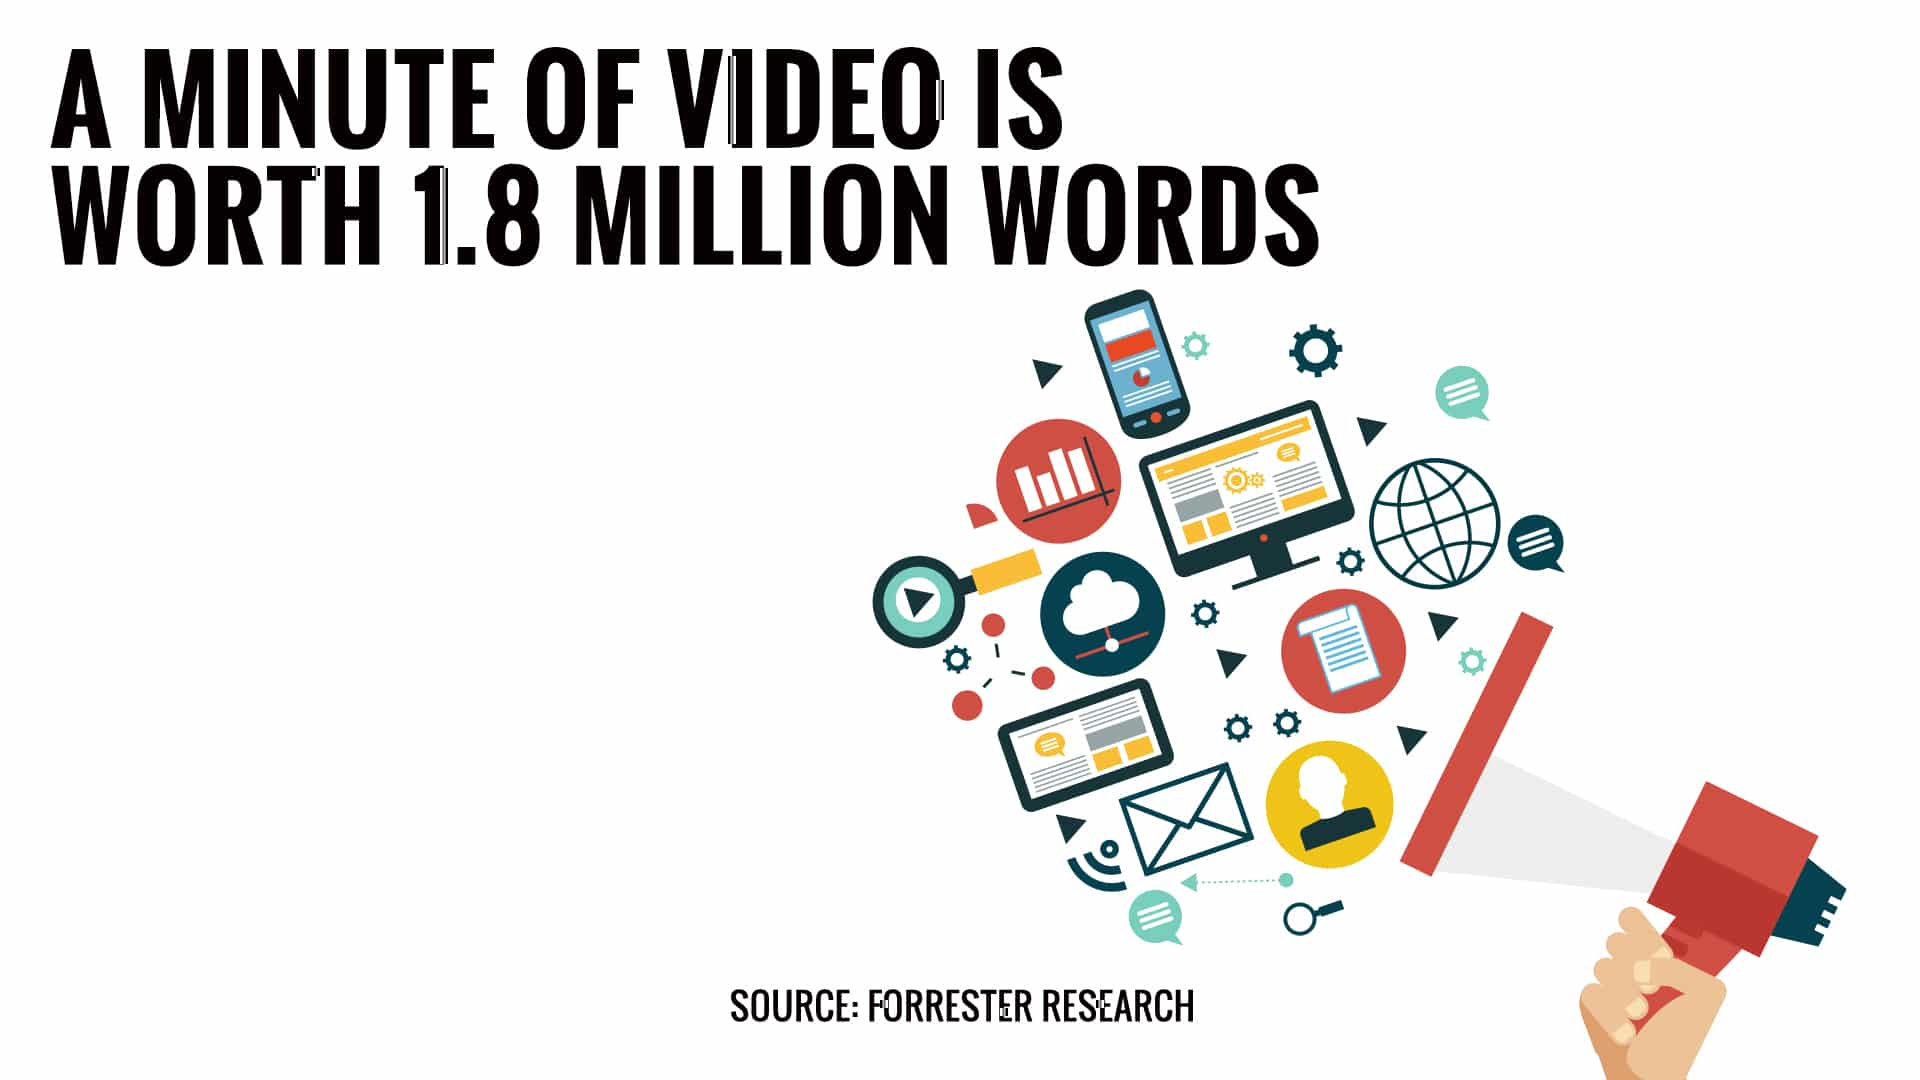 A Minute of Video is Worth 1.8 Million Words - Running Pony